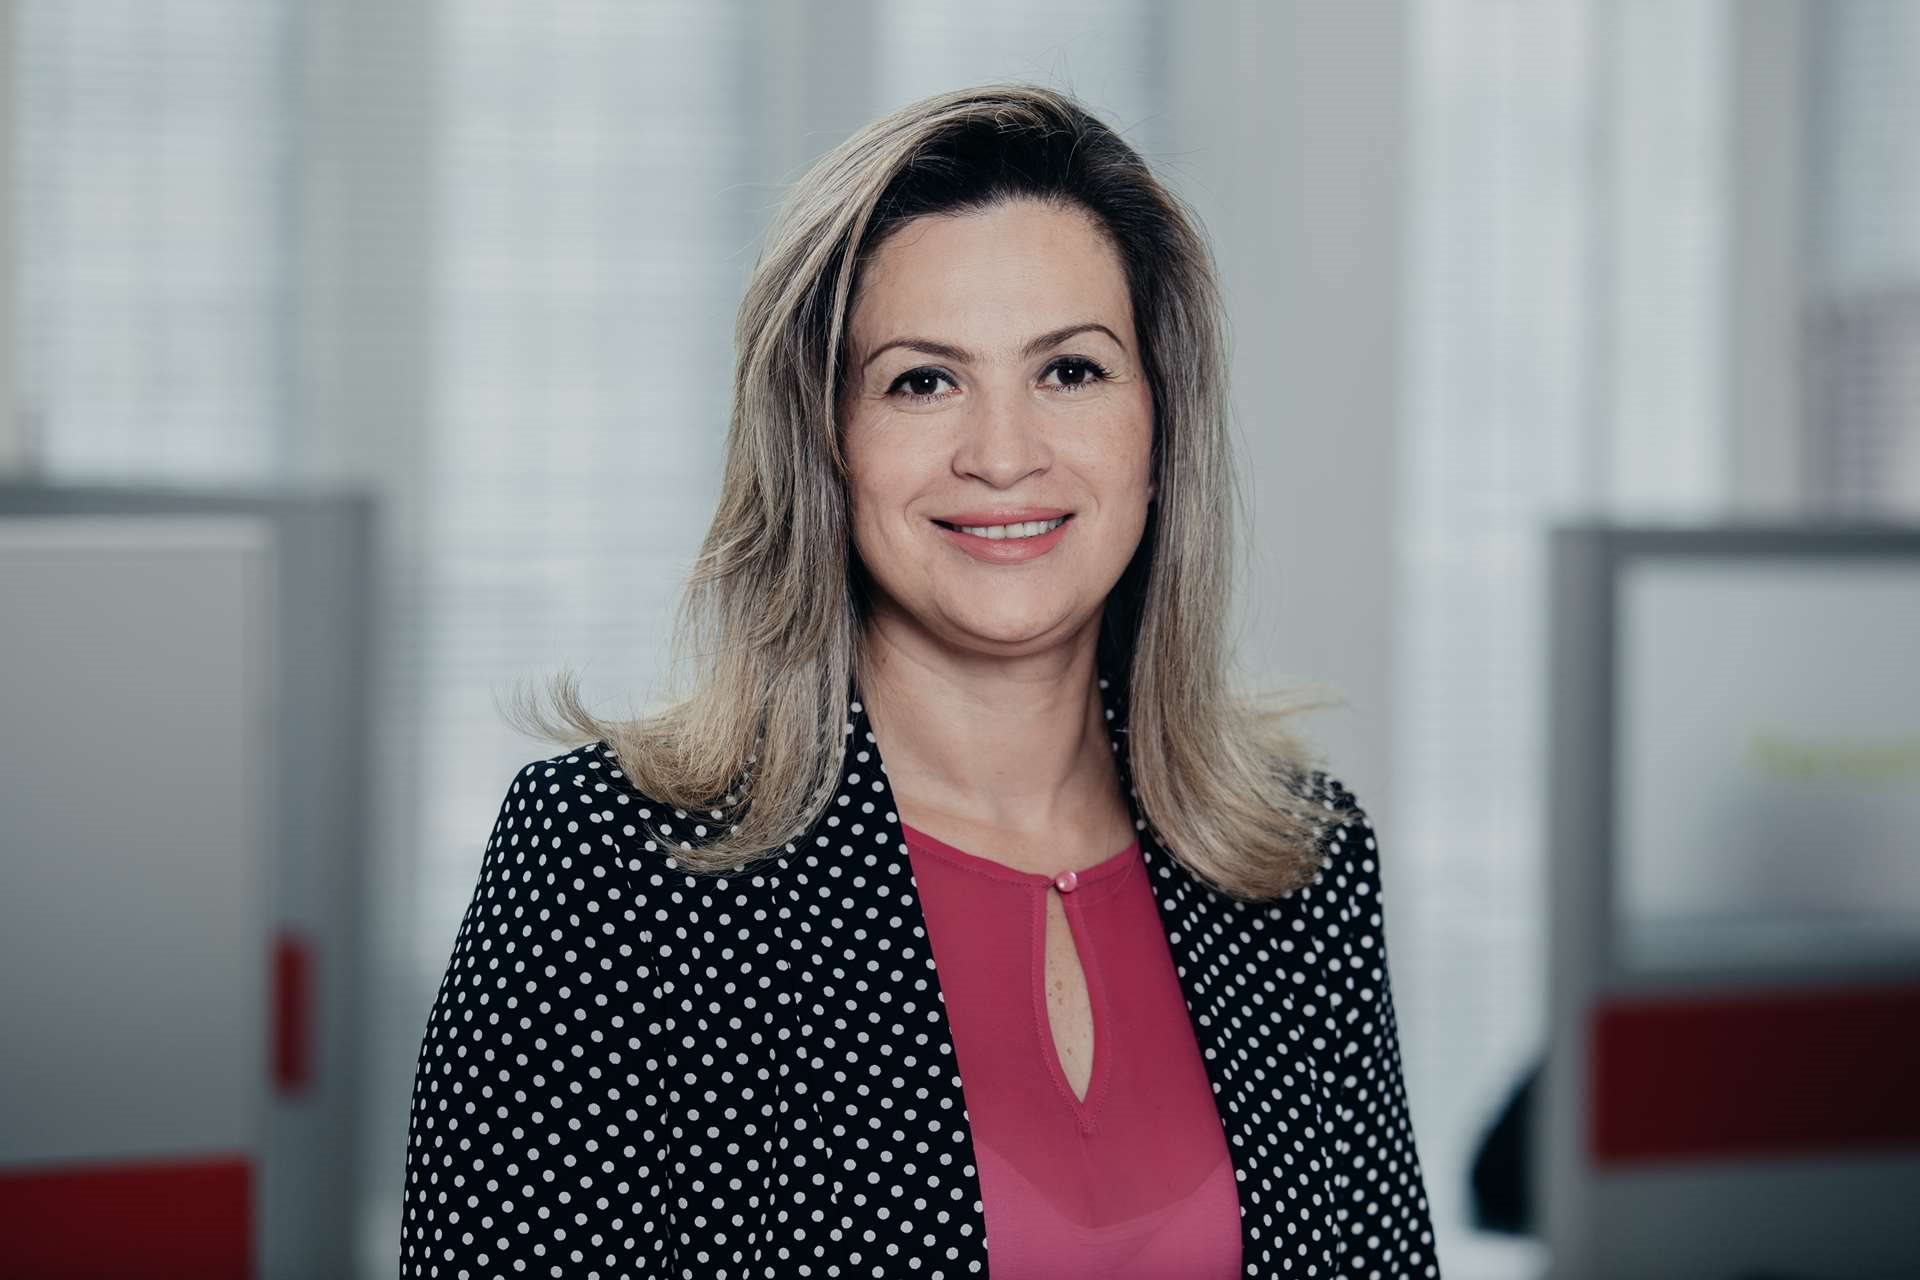 Zandra Guerrero Ruíz, Audit Partner